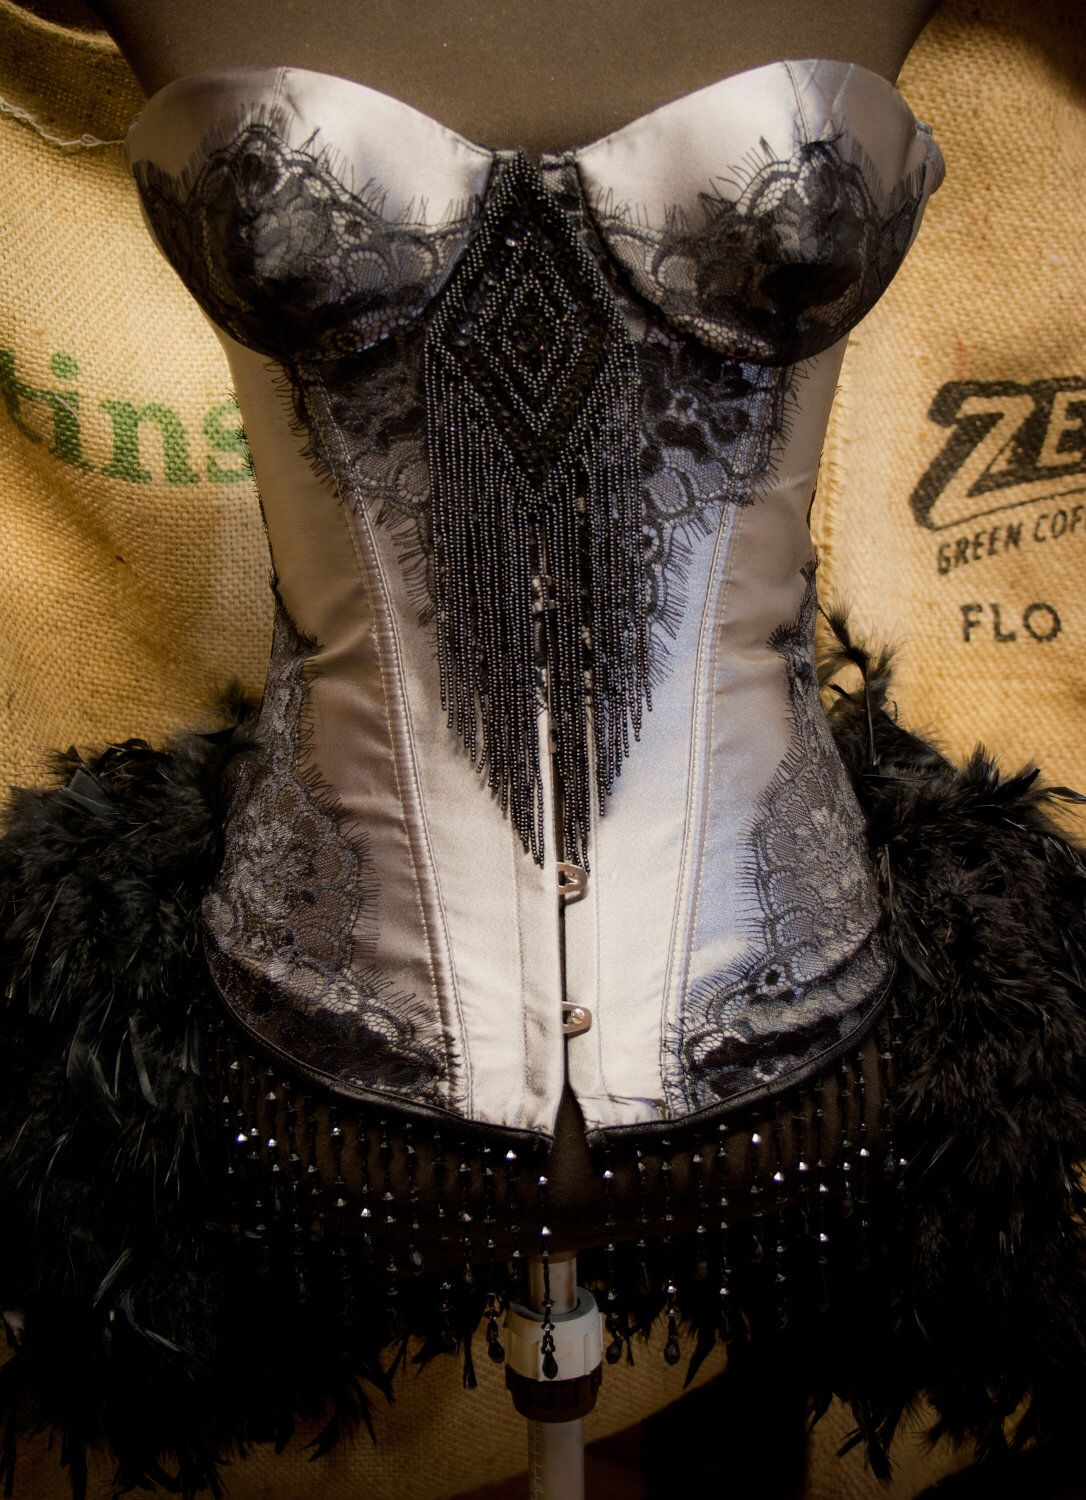 Black and Red Corset Ruffle Bra Lingerie Wasteland Outfit Made to Order Steampunk Bra